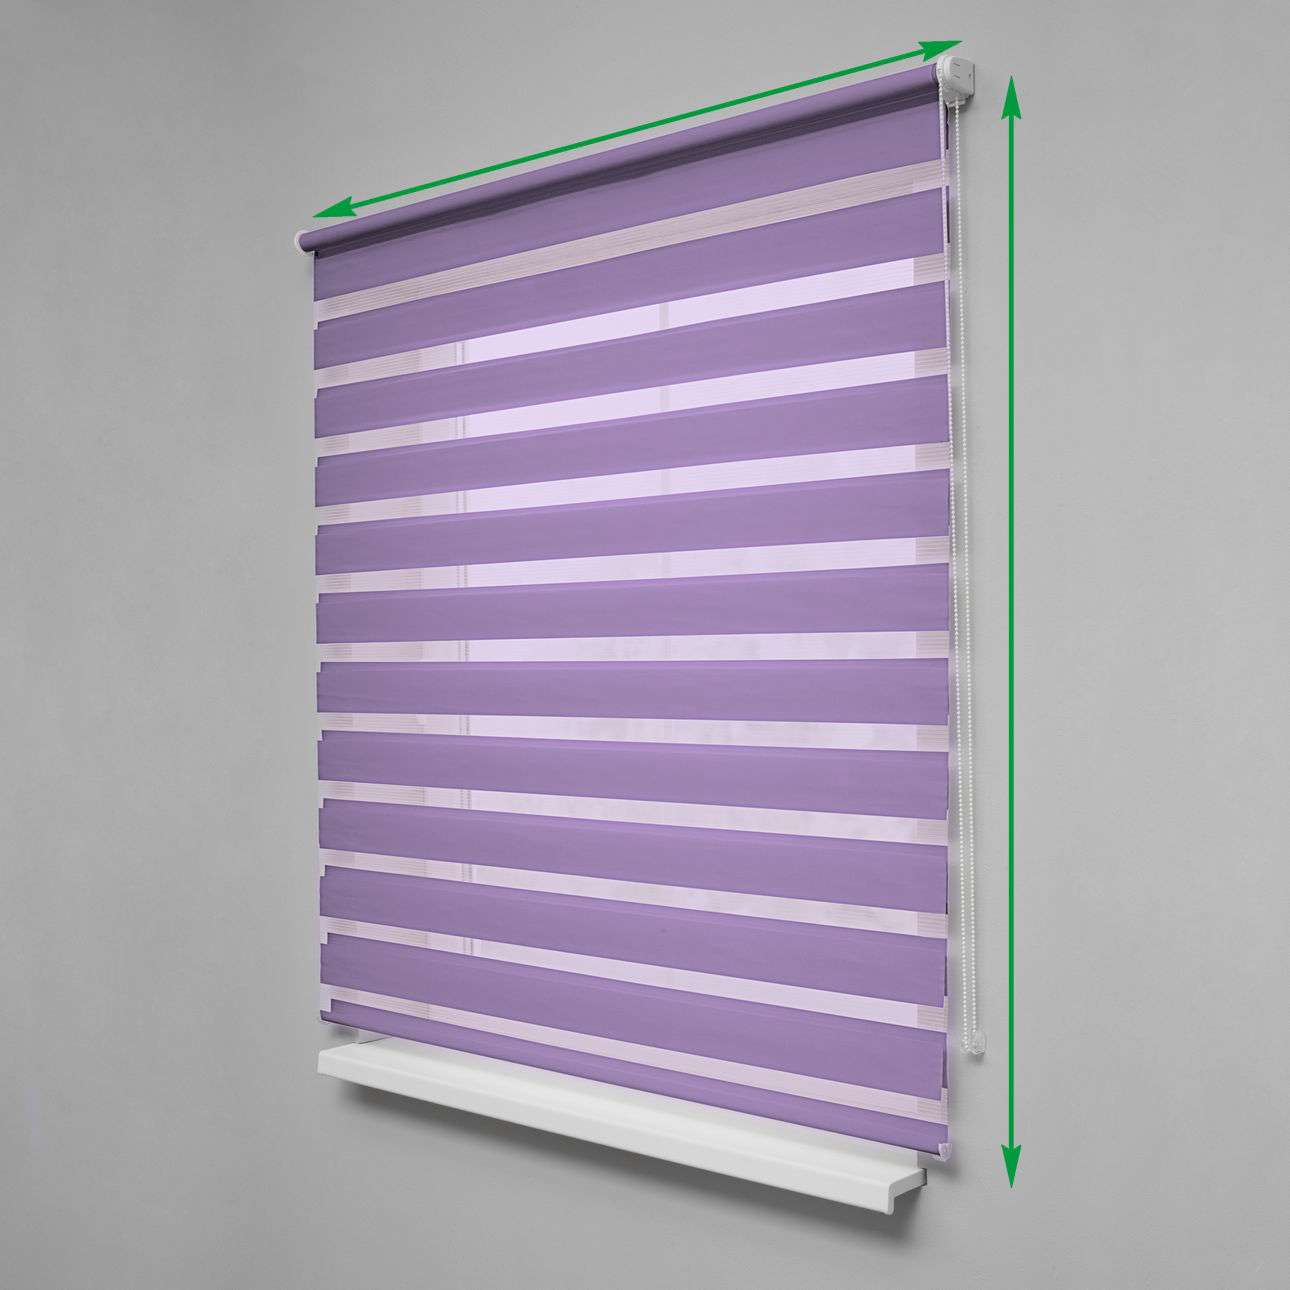 Day & Night Roller Blind in collection Roller blinds Day & Night (Venetian blind), fabric: 0109